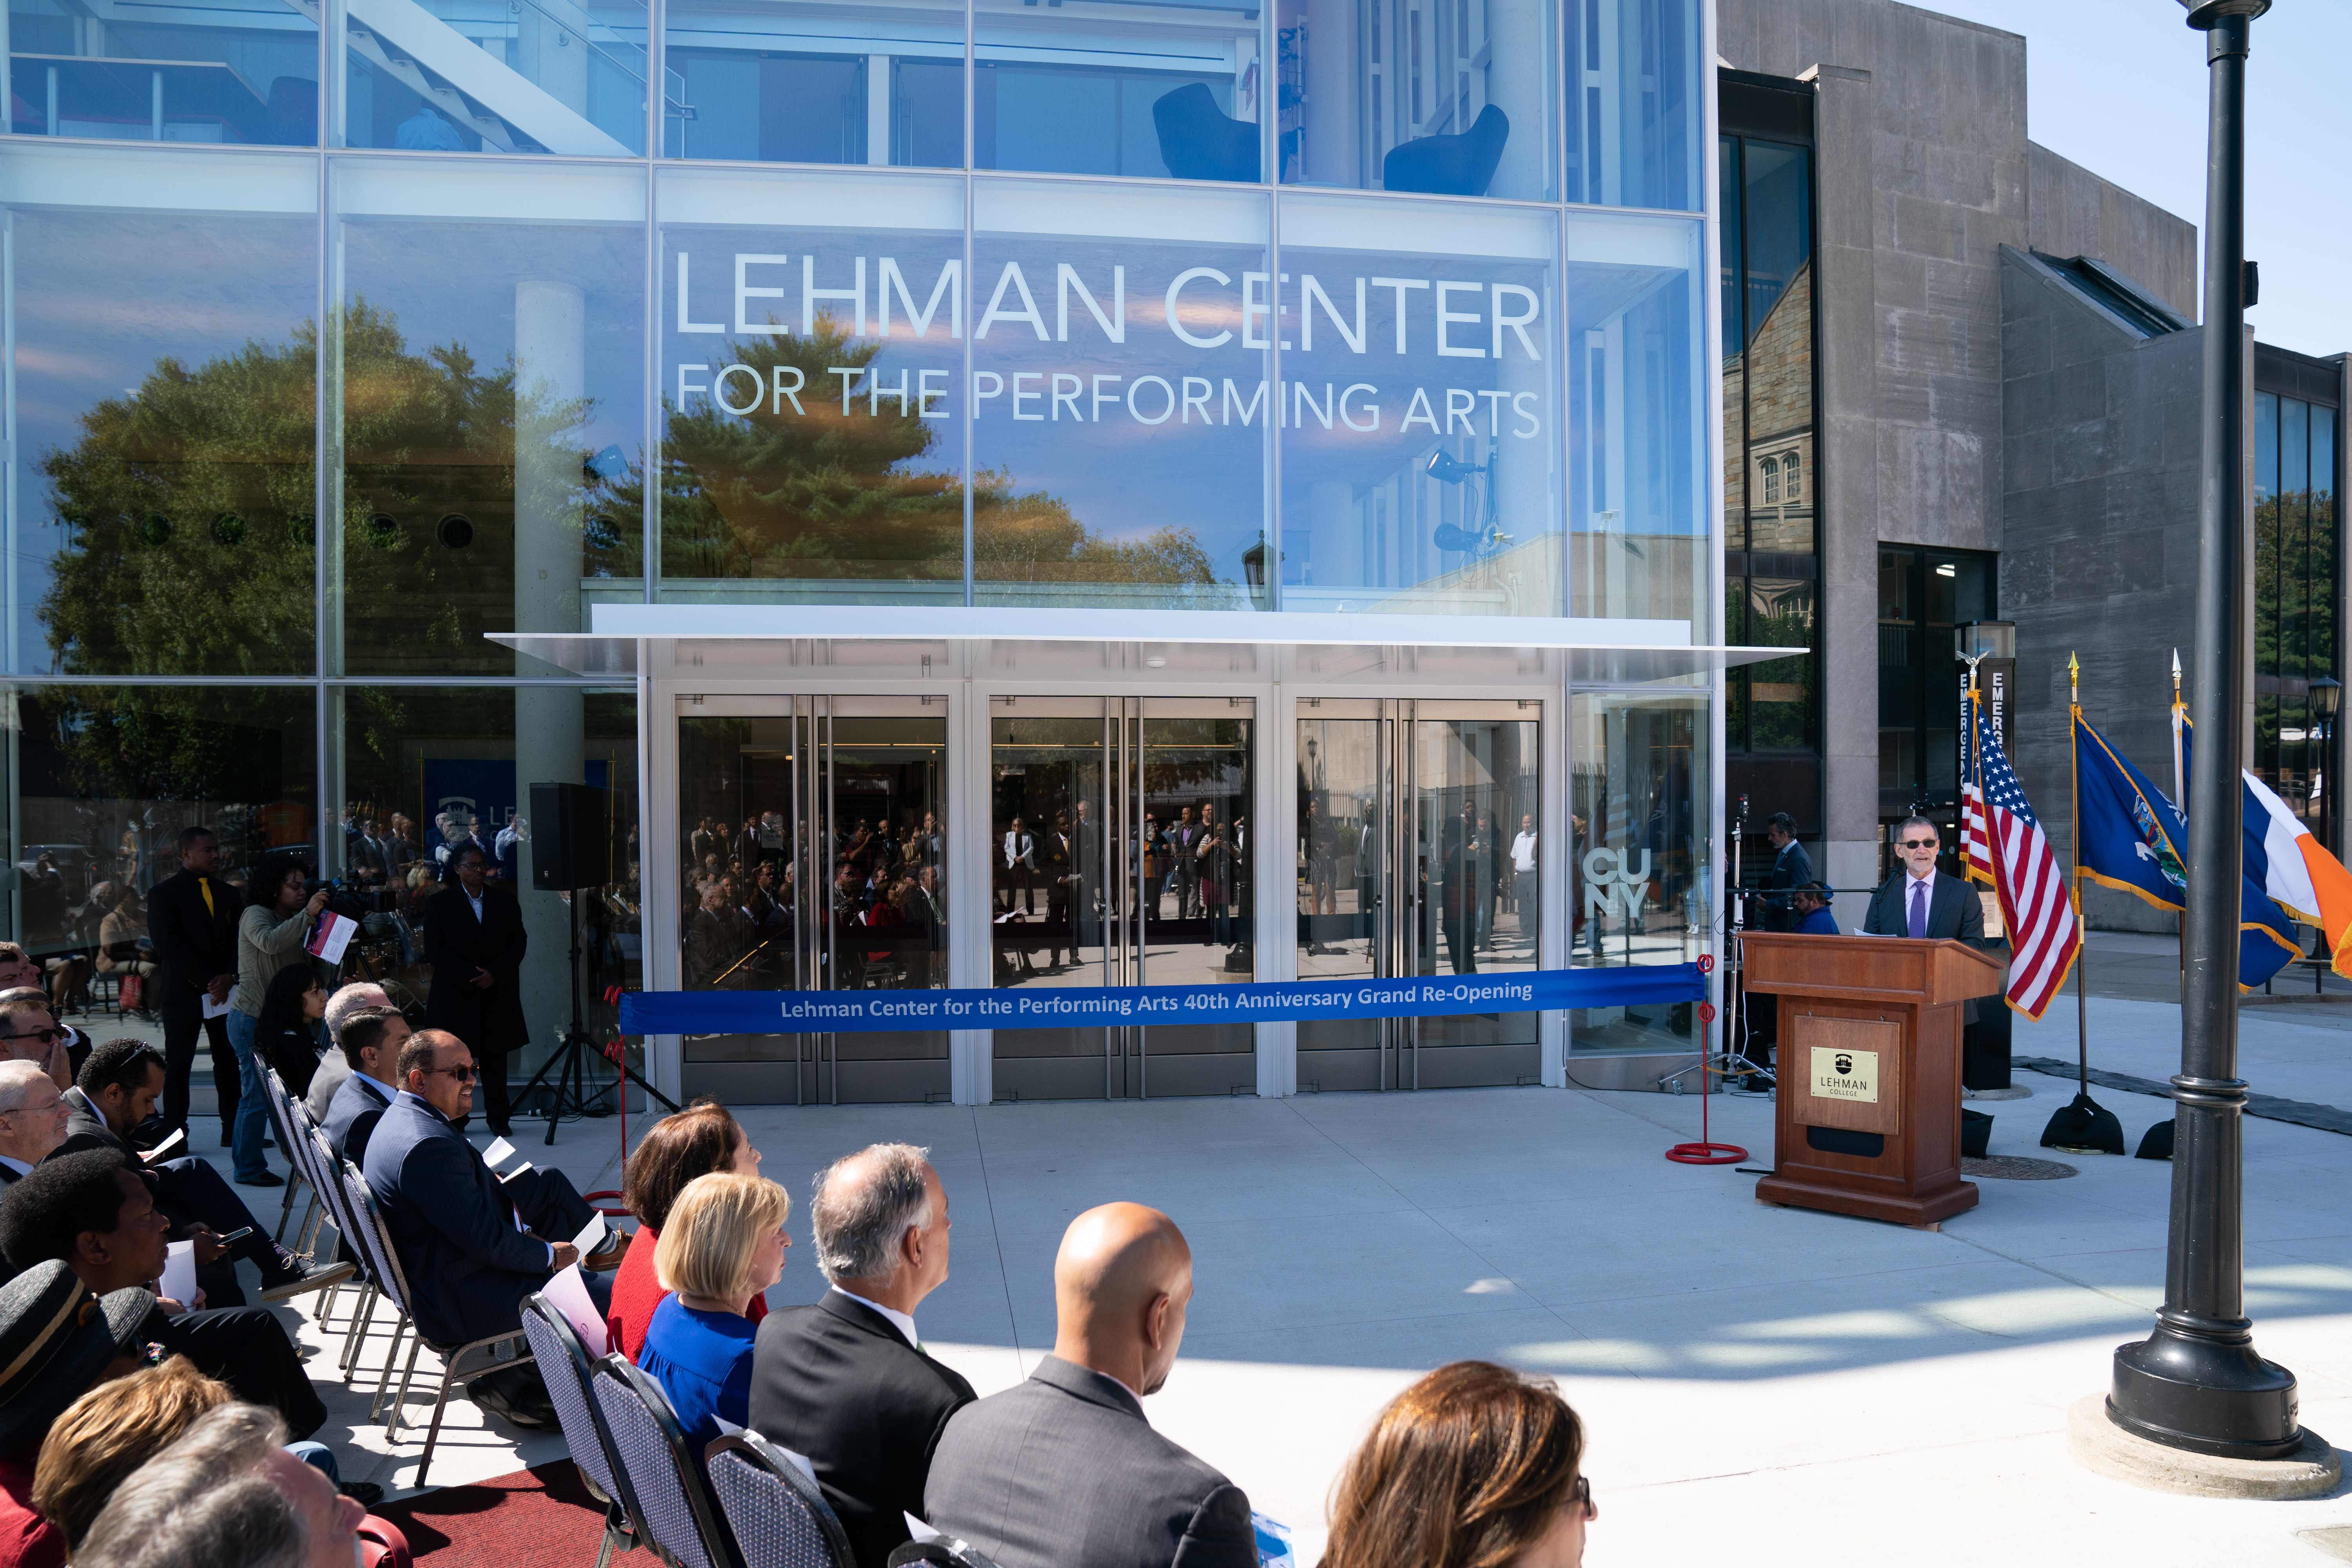 Lehman Center for the Performing Arts Marks 40th Season with $15.4 Million Renovation